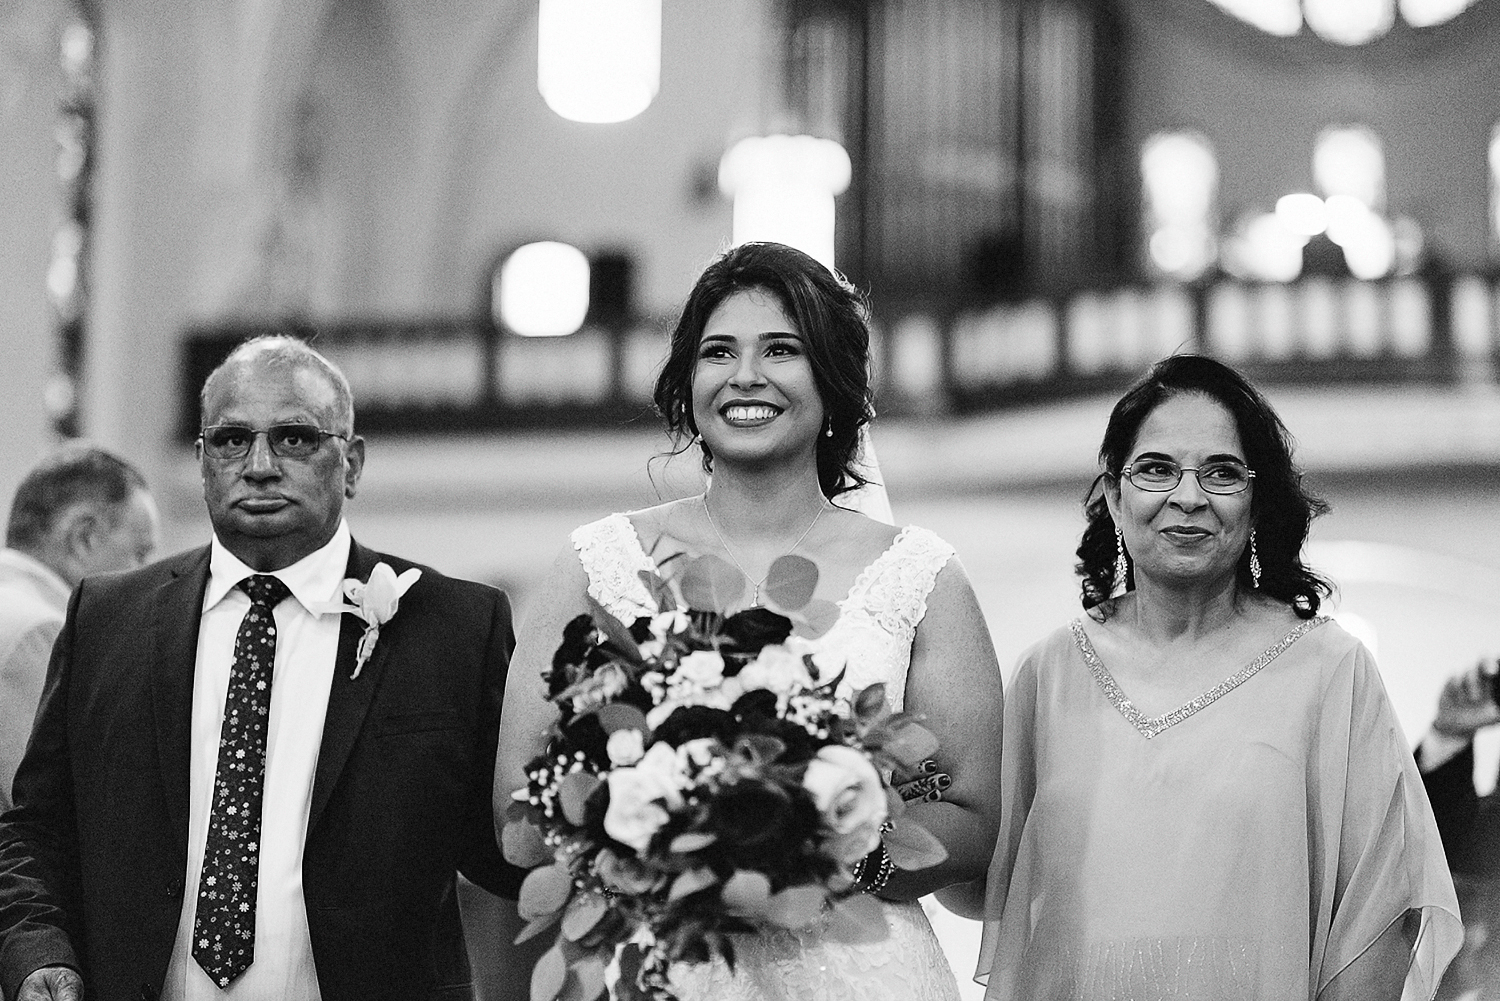 Toronto's-Best-Film-Wedding-Photography-3B-Photography-Multicultural-wedding-day-two-Hamilton-Grimsby-Toronto-Wedding-documentary-photojournalistic-photojournalism-prices-Bride-entering-Church-for-ceremony.jpg